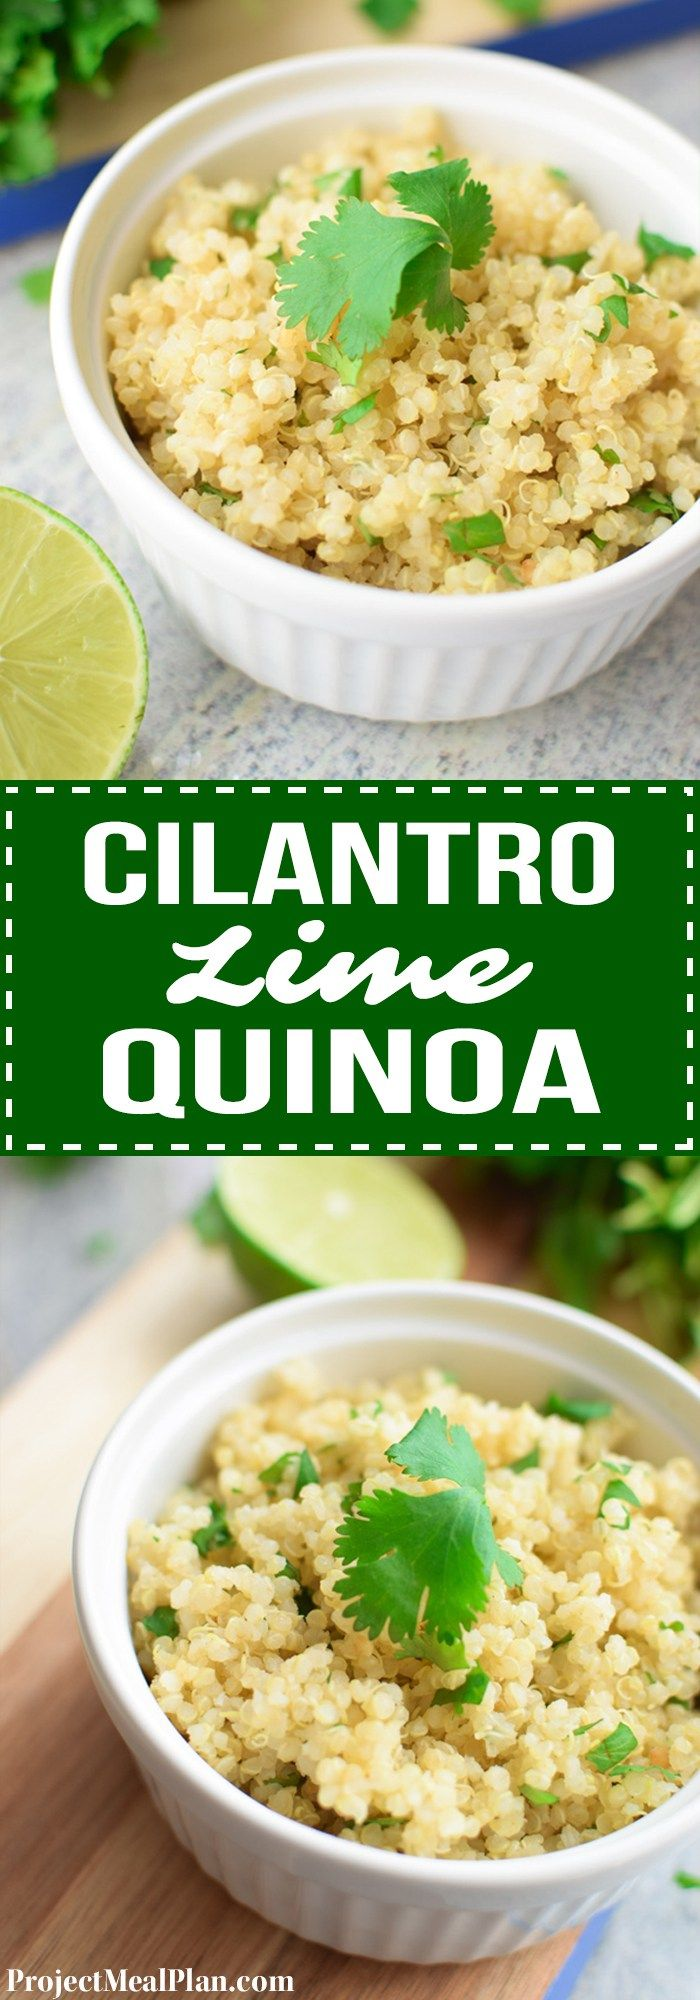 The Easiest Cilantro Lime Quinoa recipe - yummy and simple quinoa side dish made in a rice cooker! Perfect sub for rice in any dish. - ProjectMealPlan.com